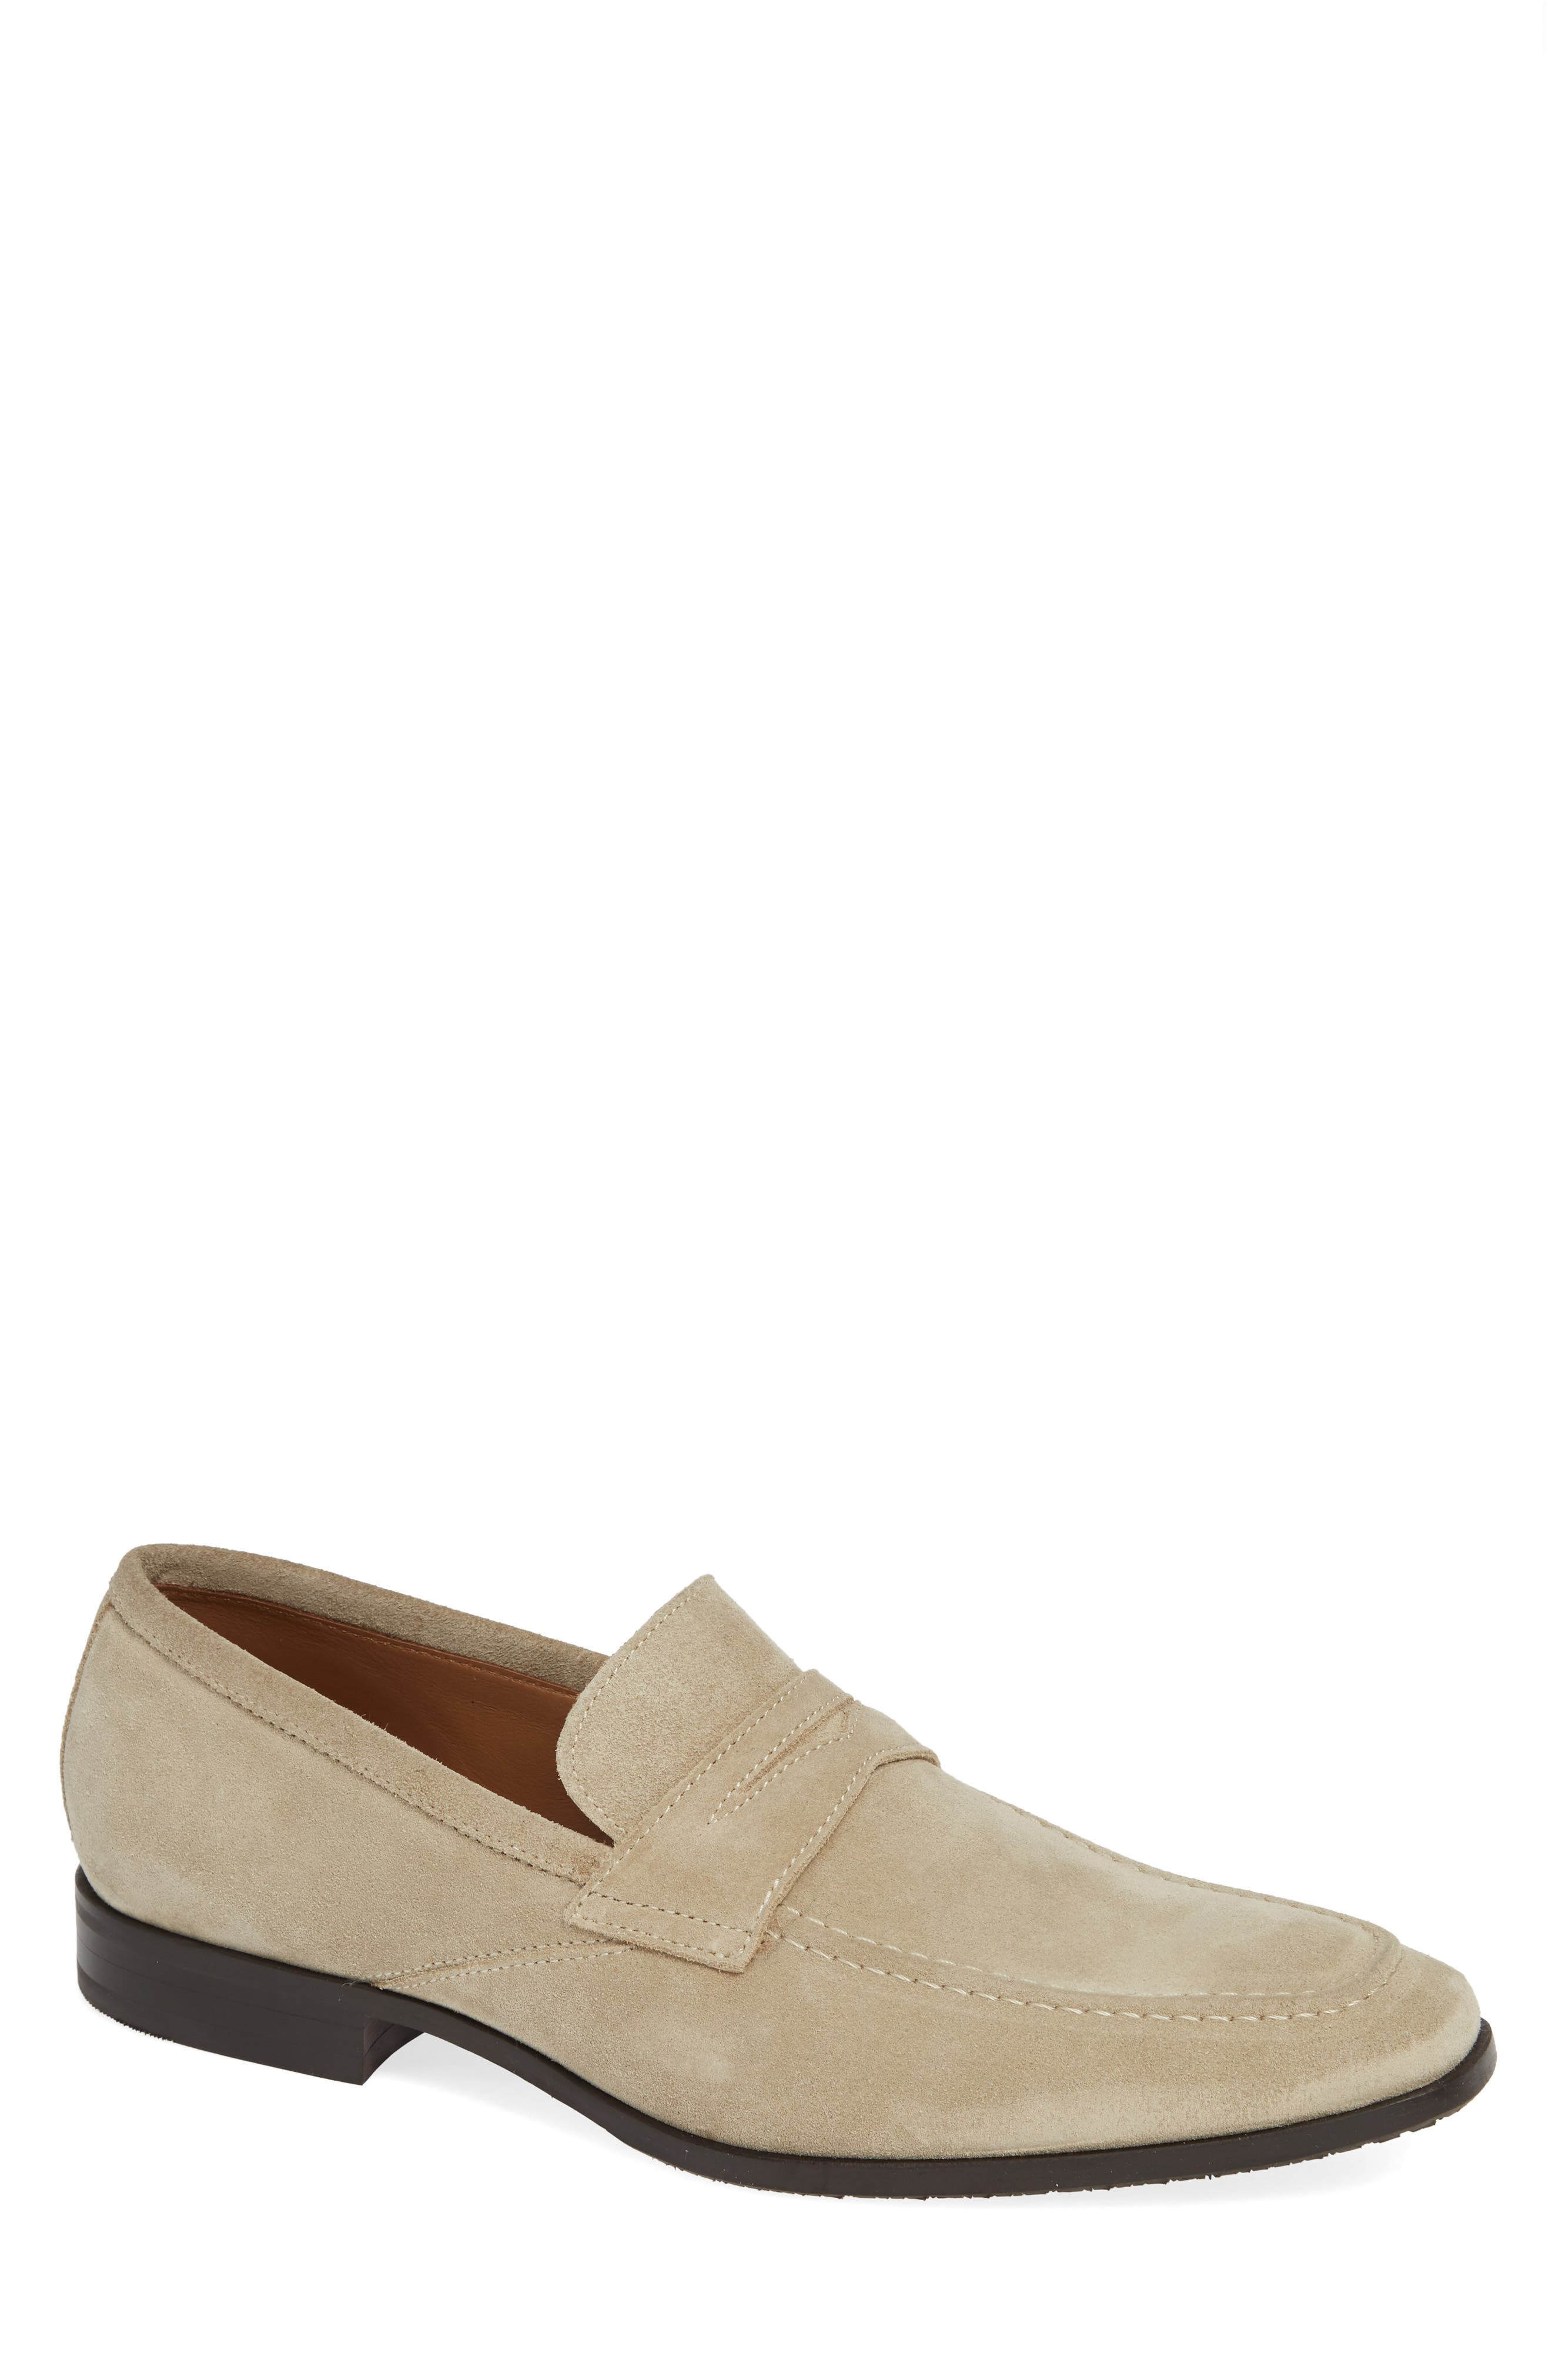 Nicasio Apron Toe Penny Loafer,                         Main,                         color, SAND SUEDE